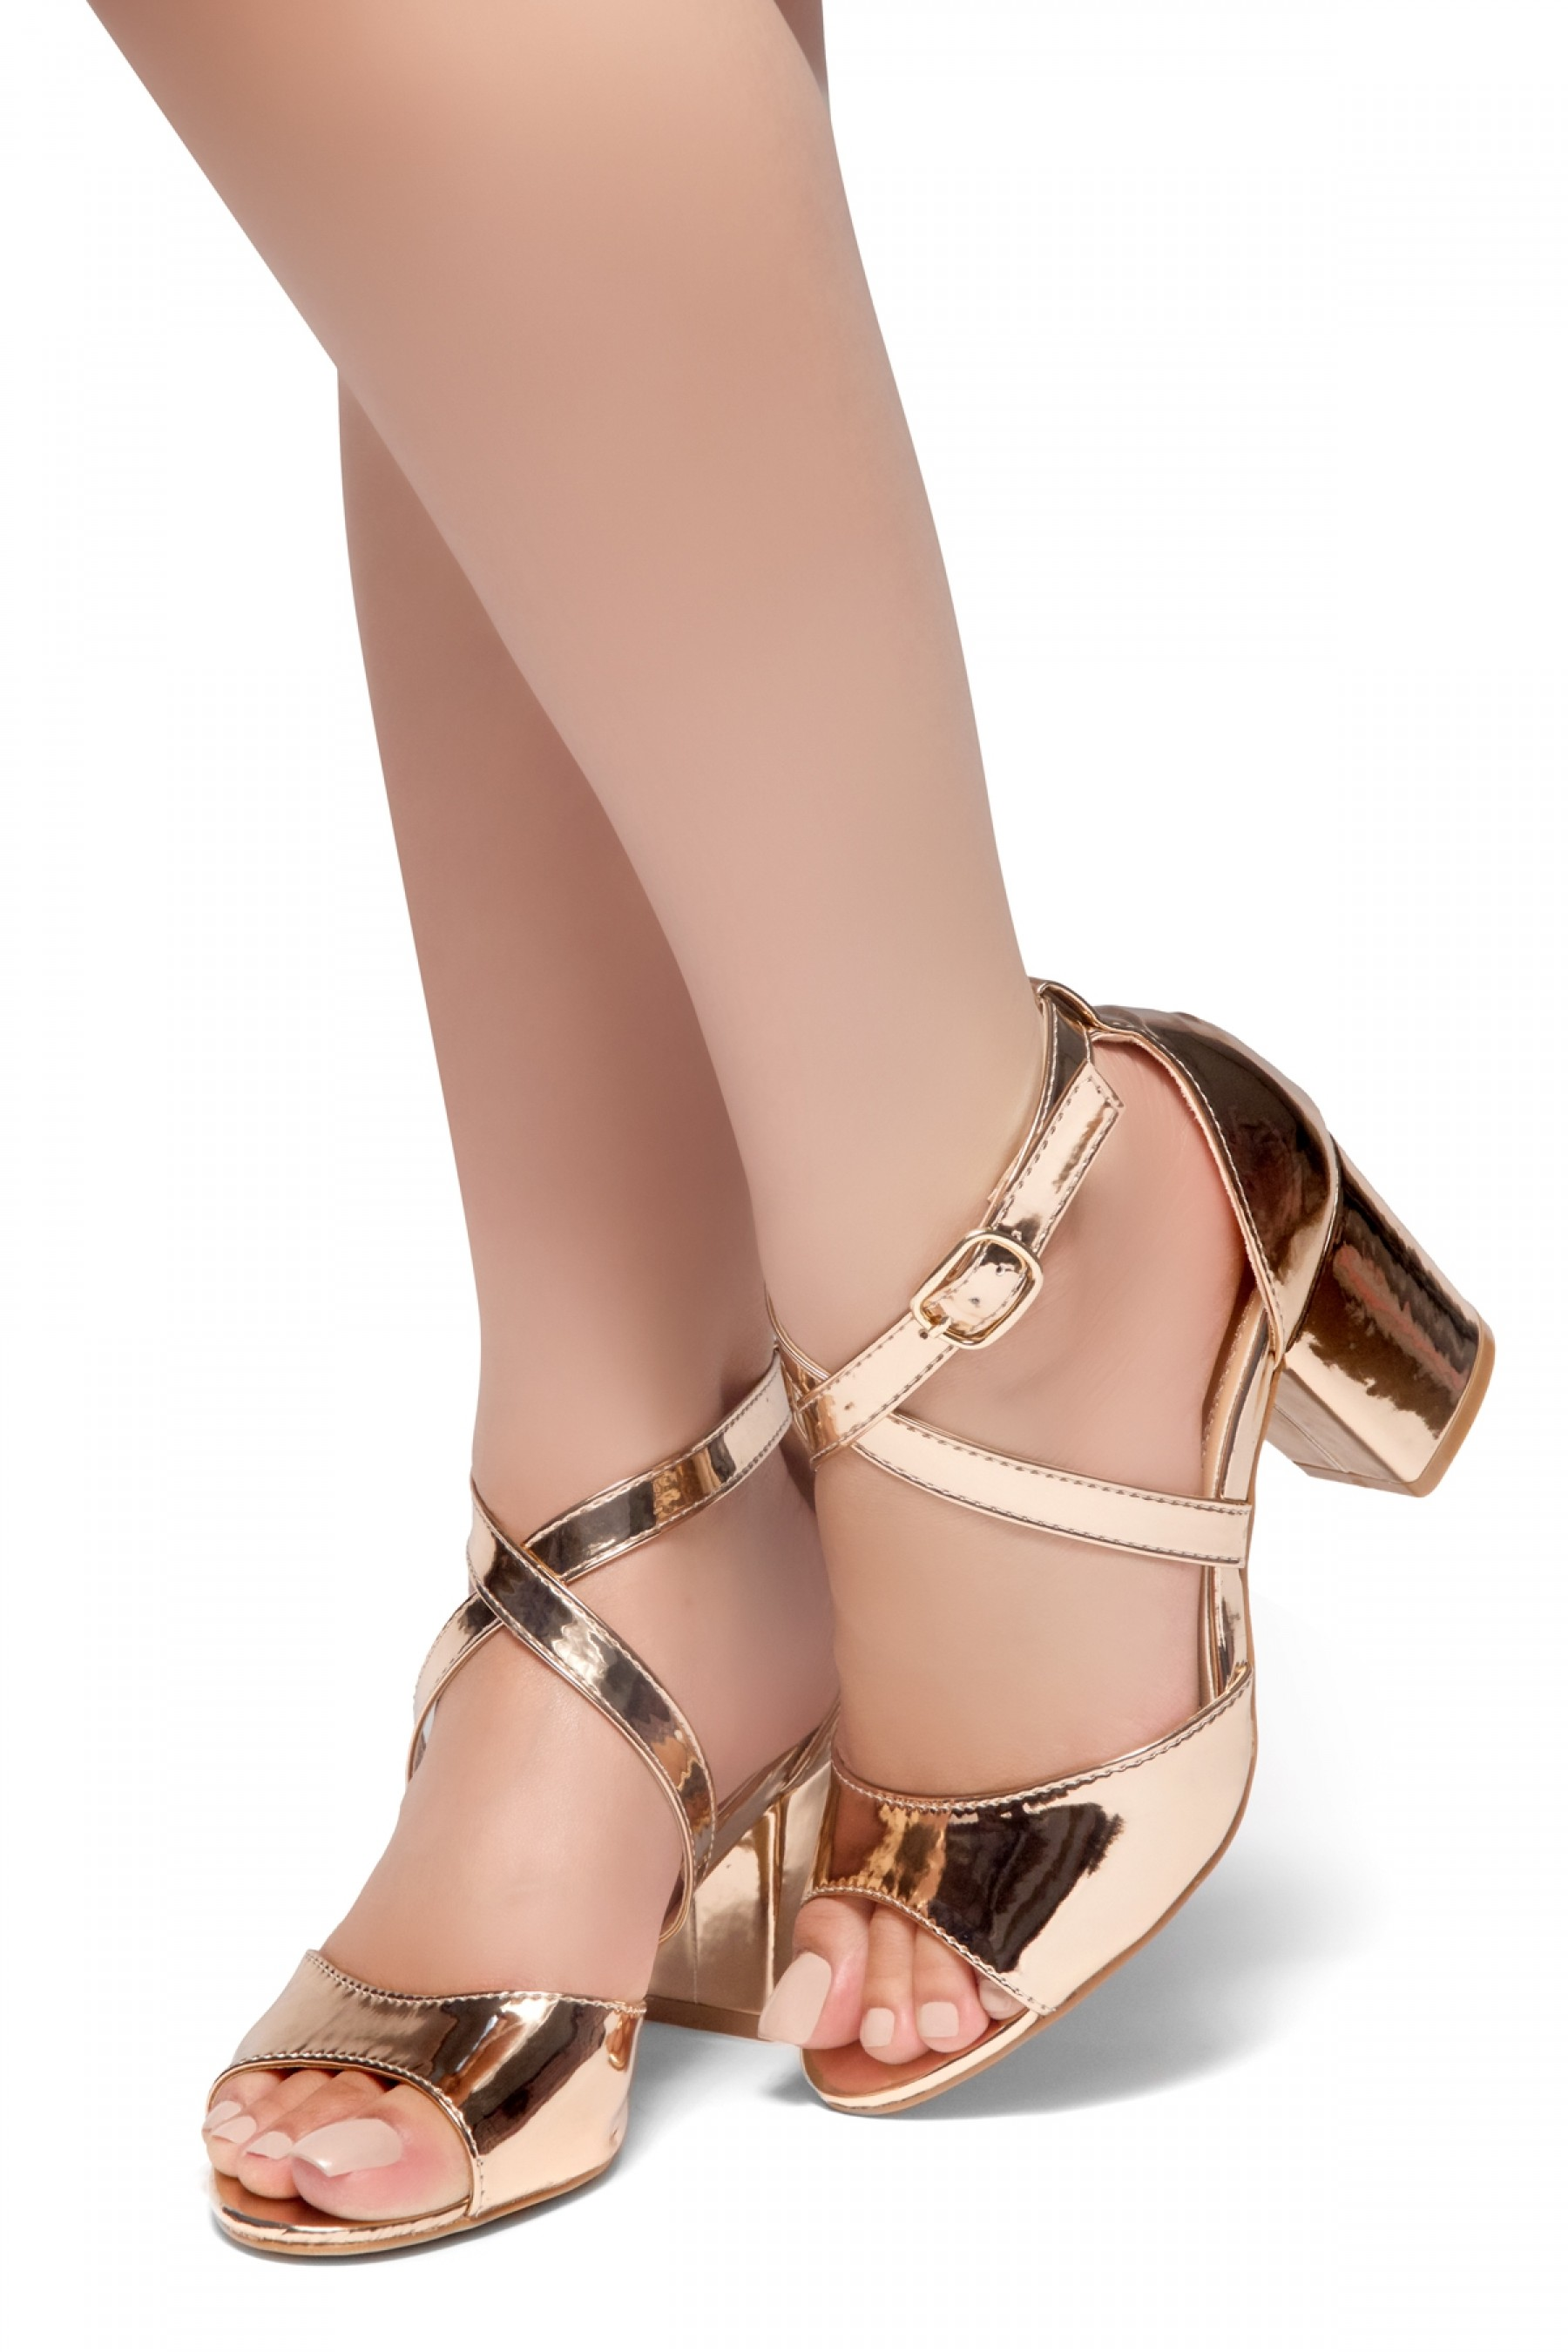 Herstyle New Horizon Peep Toe Vamp Straps Across Ankle With Back Closure Low Chunky Heel Sandal Rosegold